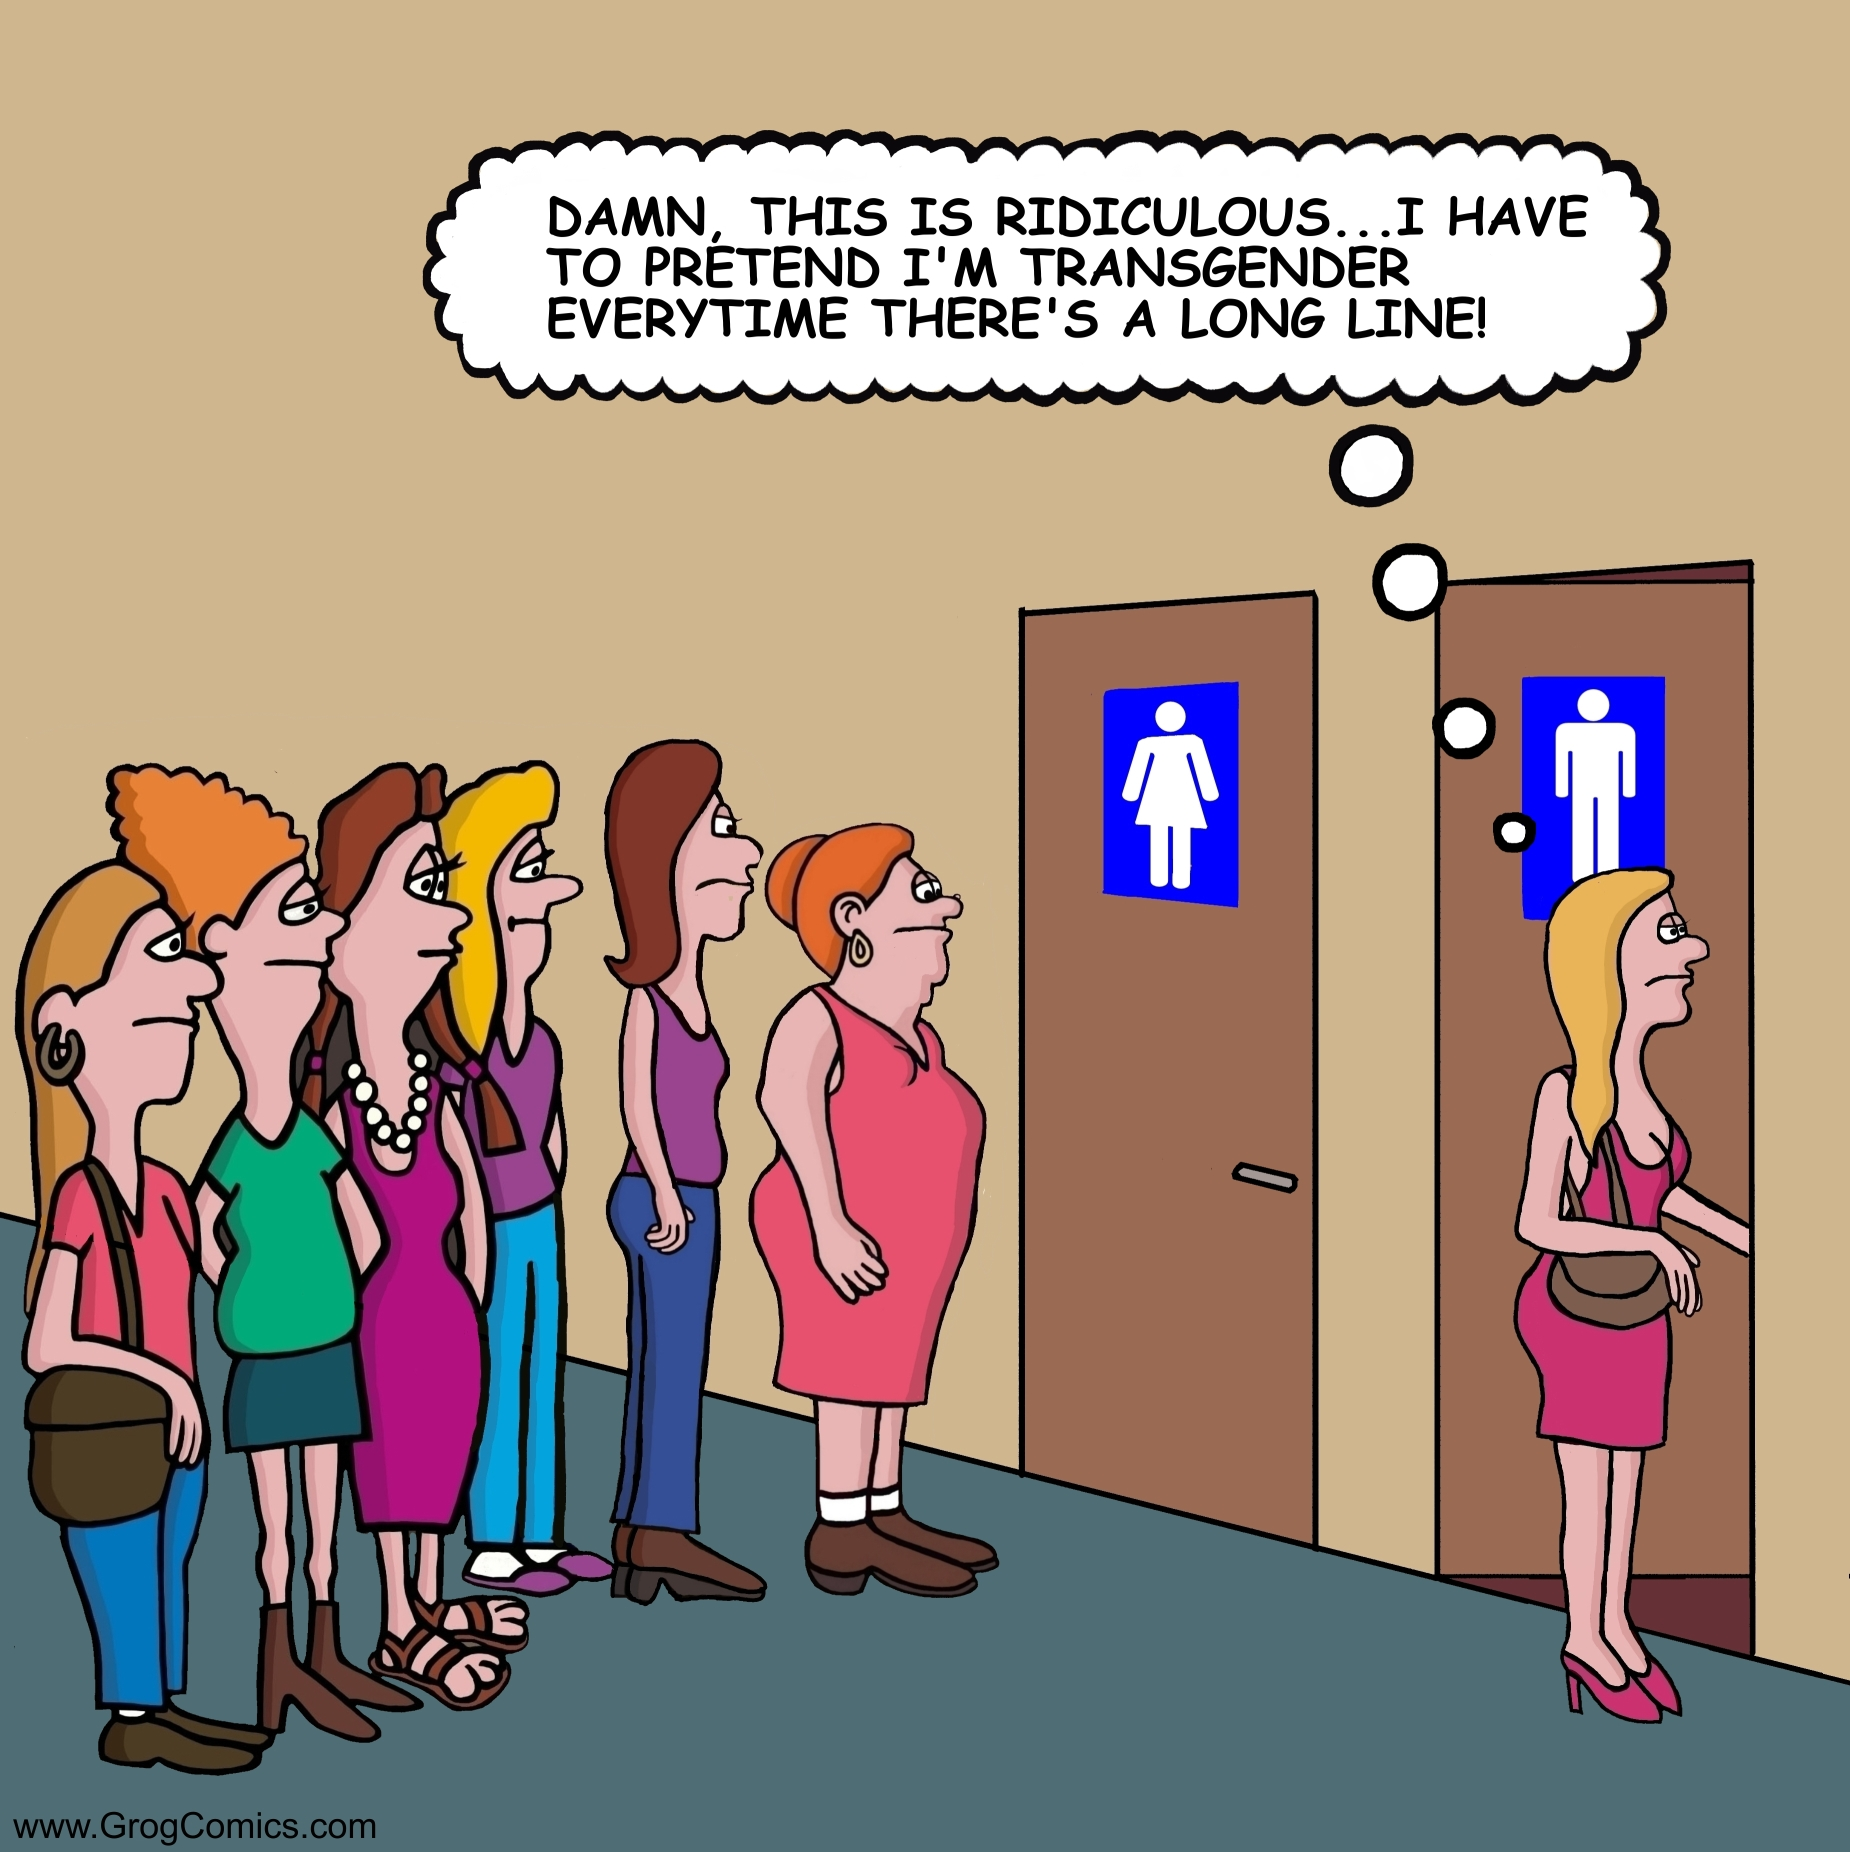 "A long line exists for the woman's bathroom. One woman decides to use the men's bathroom instead. She says to herself, ""Damn, this is ridiculous...I have to pretend I'm transgender everytime there is a long line."""